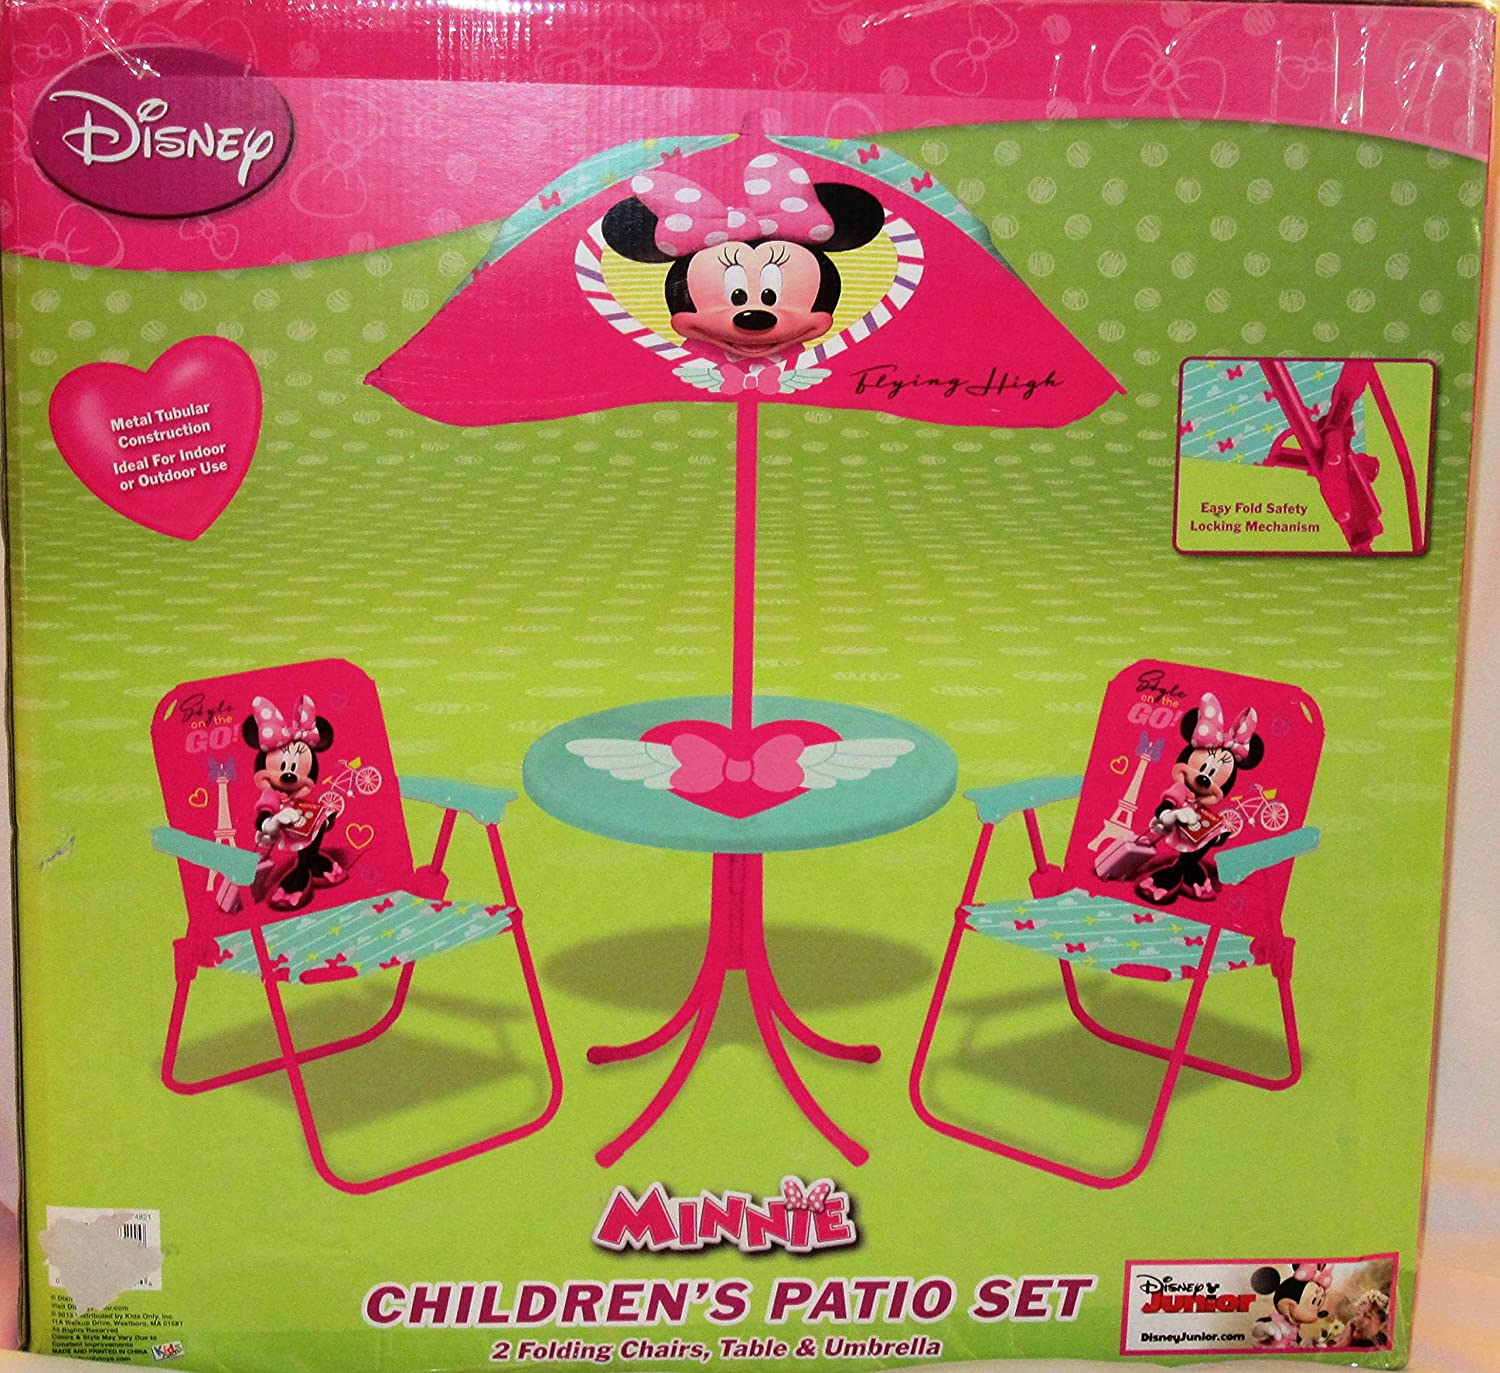 Amazon Minnie Mouse Jet Setter Classic Patio Playset Toys & Games